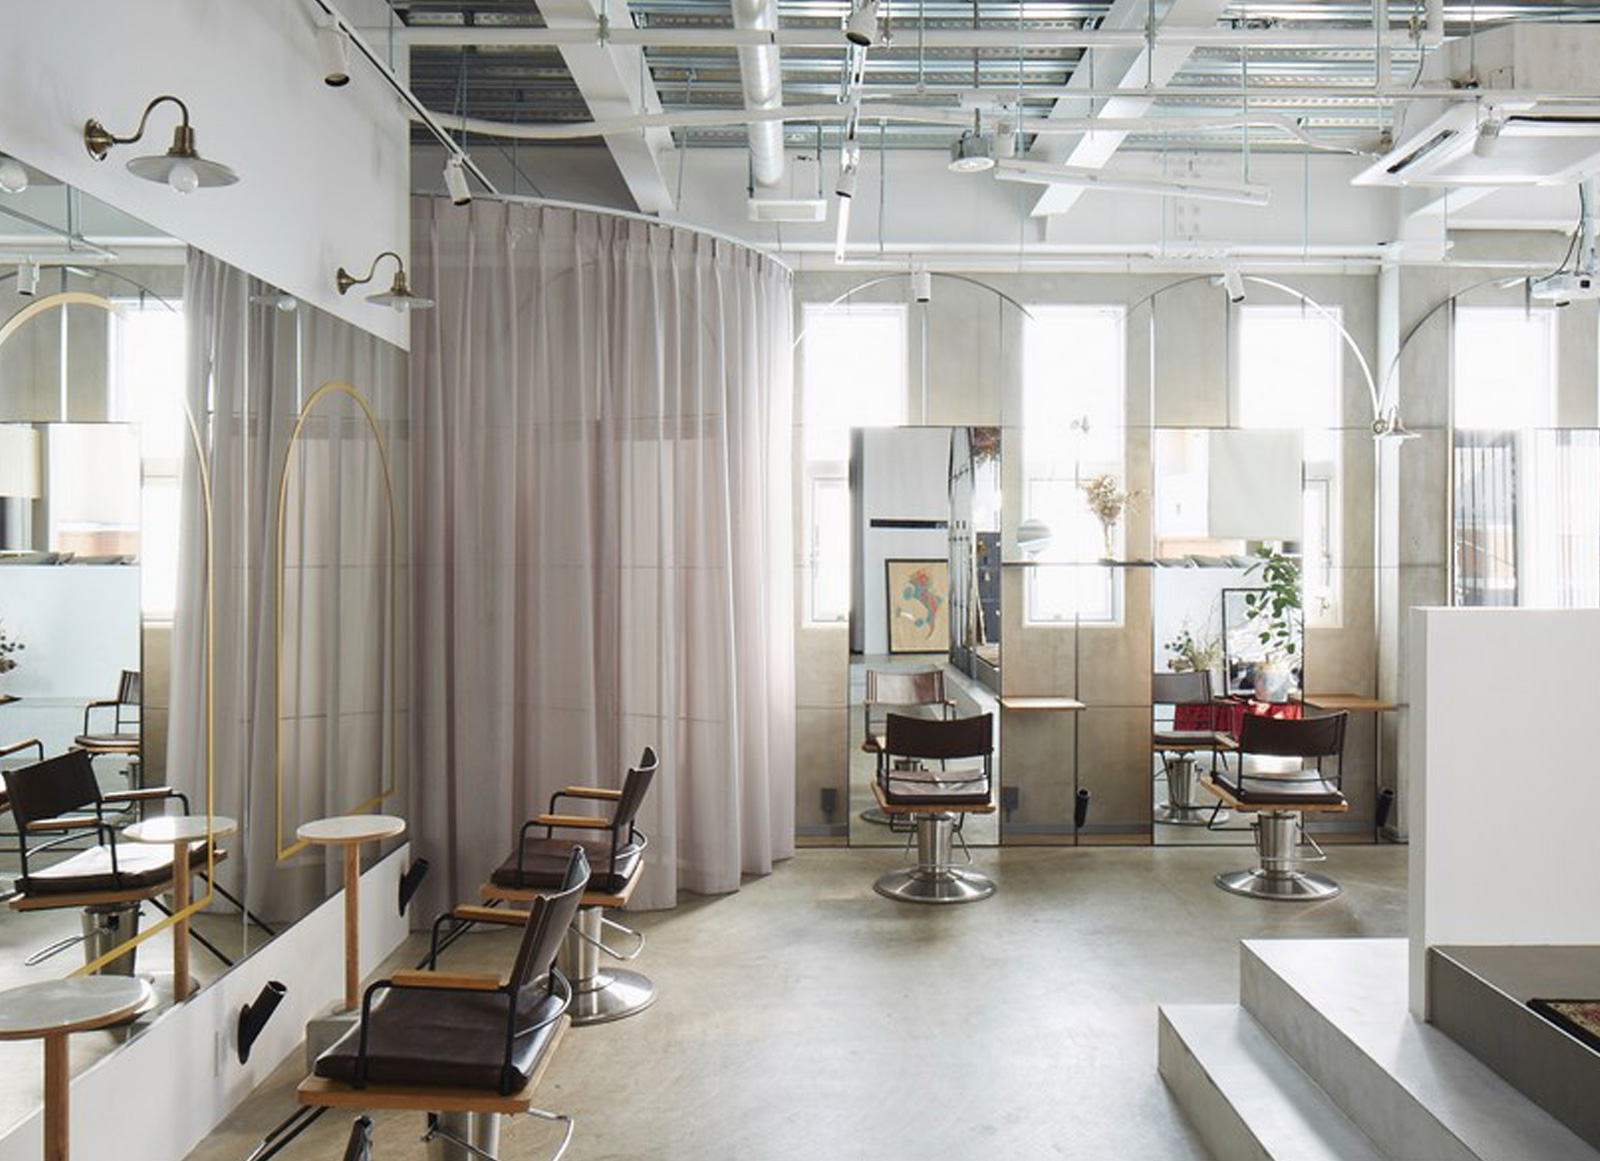 Beauty salon in Shibuya | Nanometer Architecture | International Architecture Awards 2019